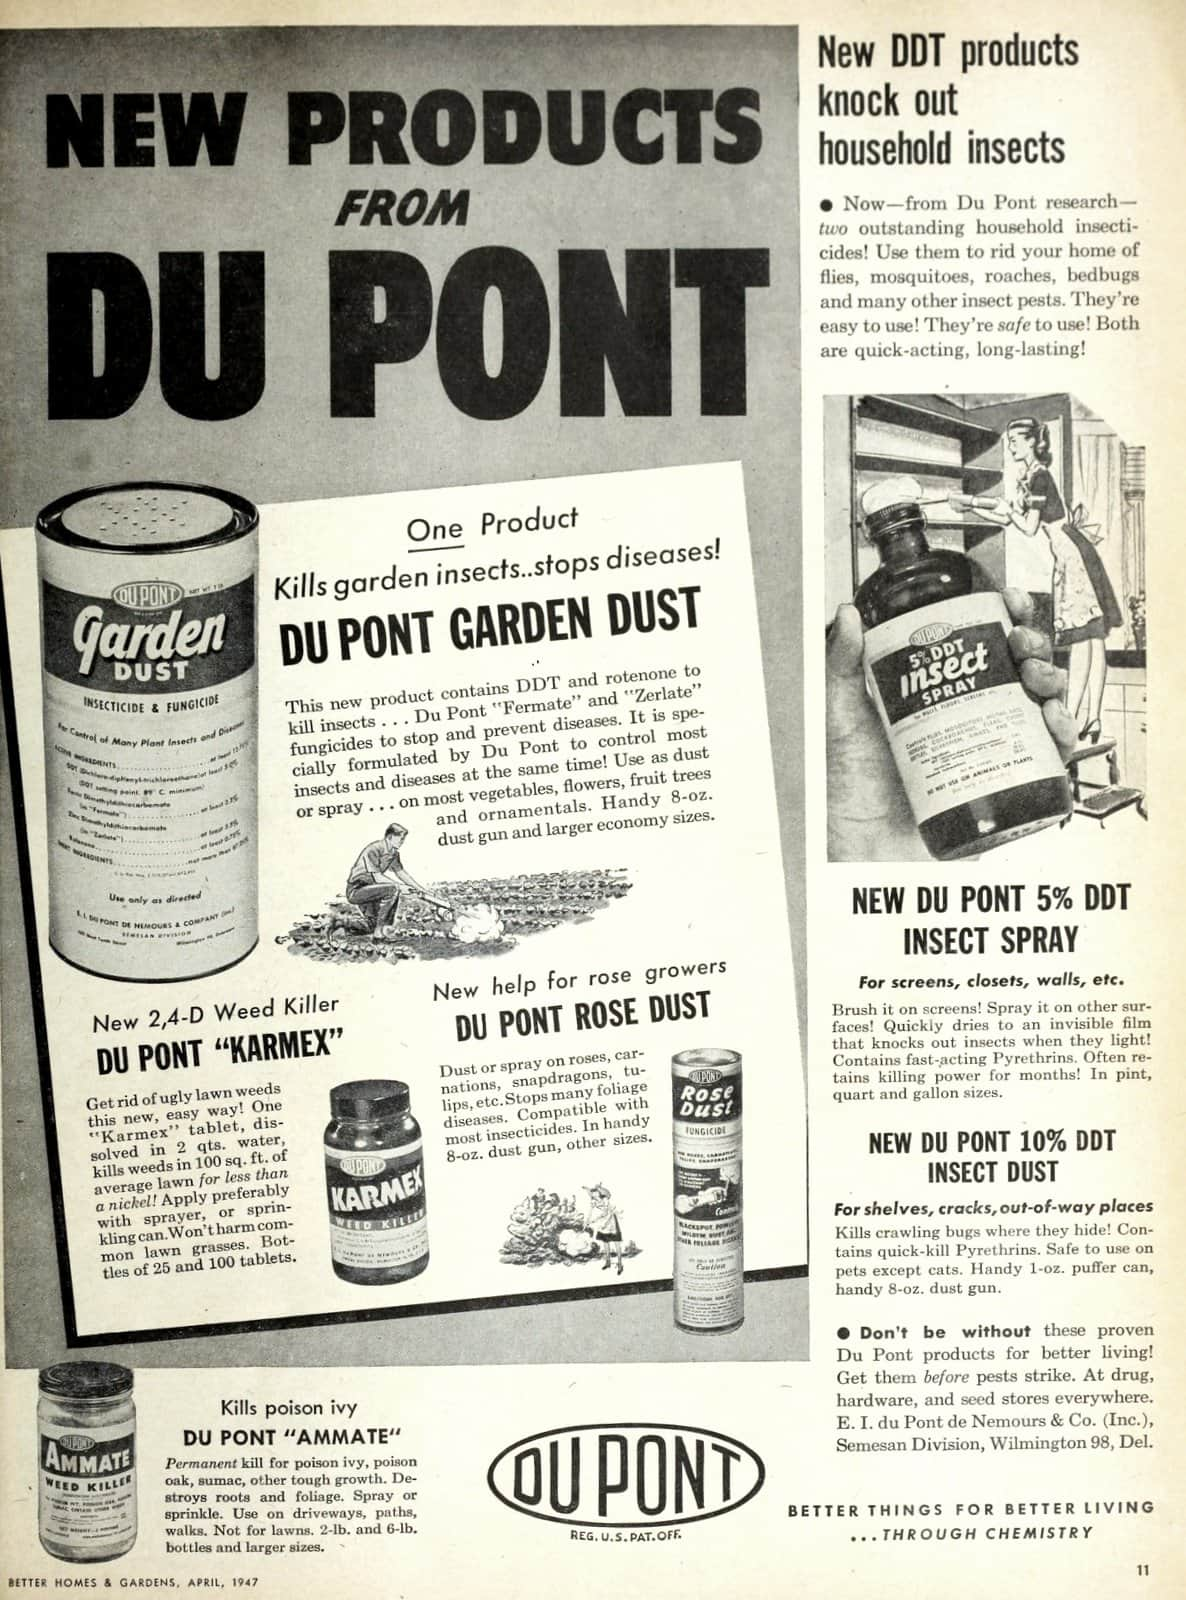 Vintage DDT products knock out household insects (1947)